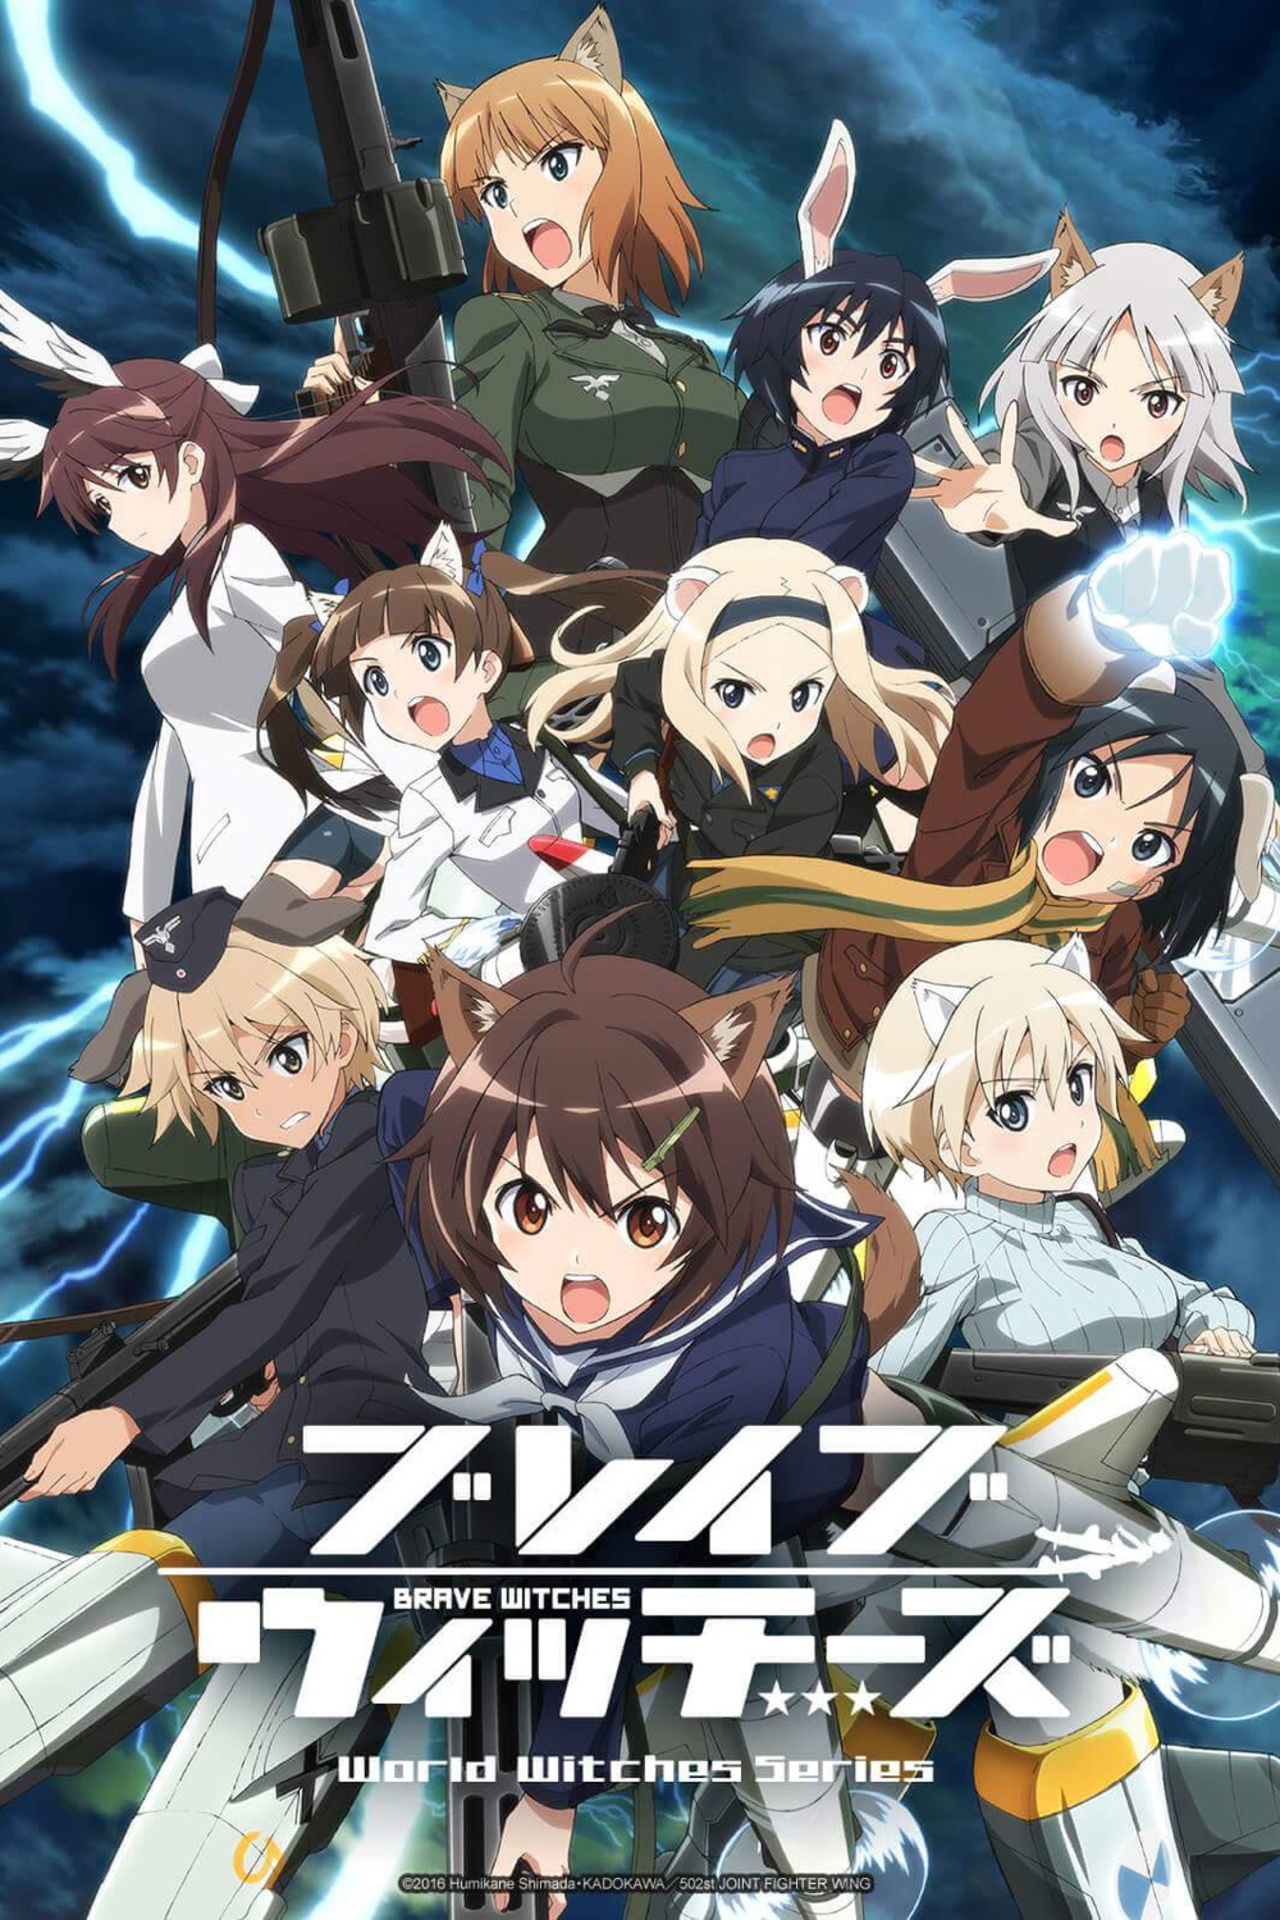 Brave Witches kapak